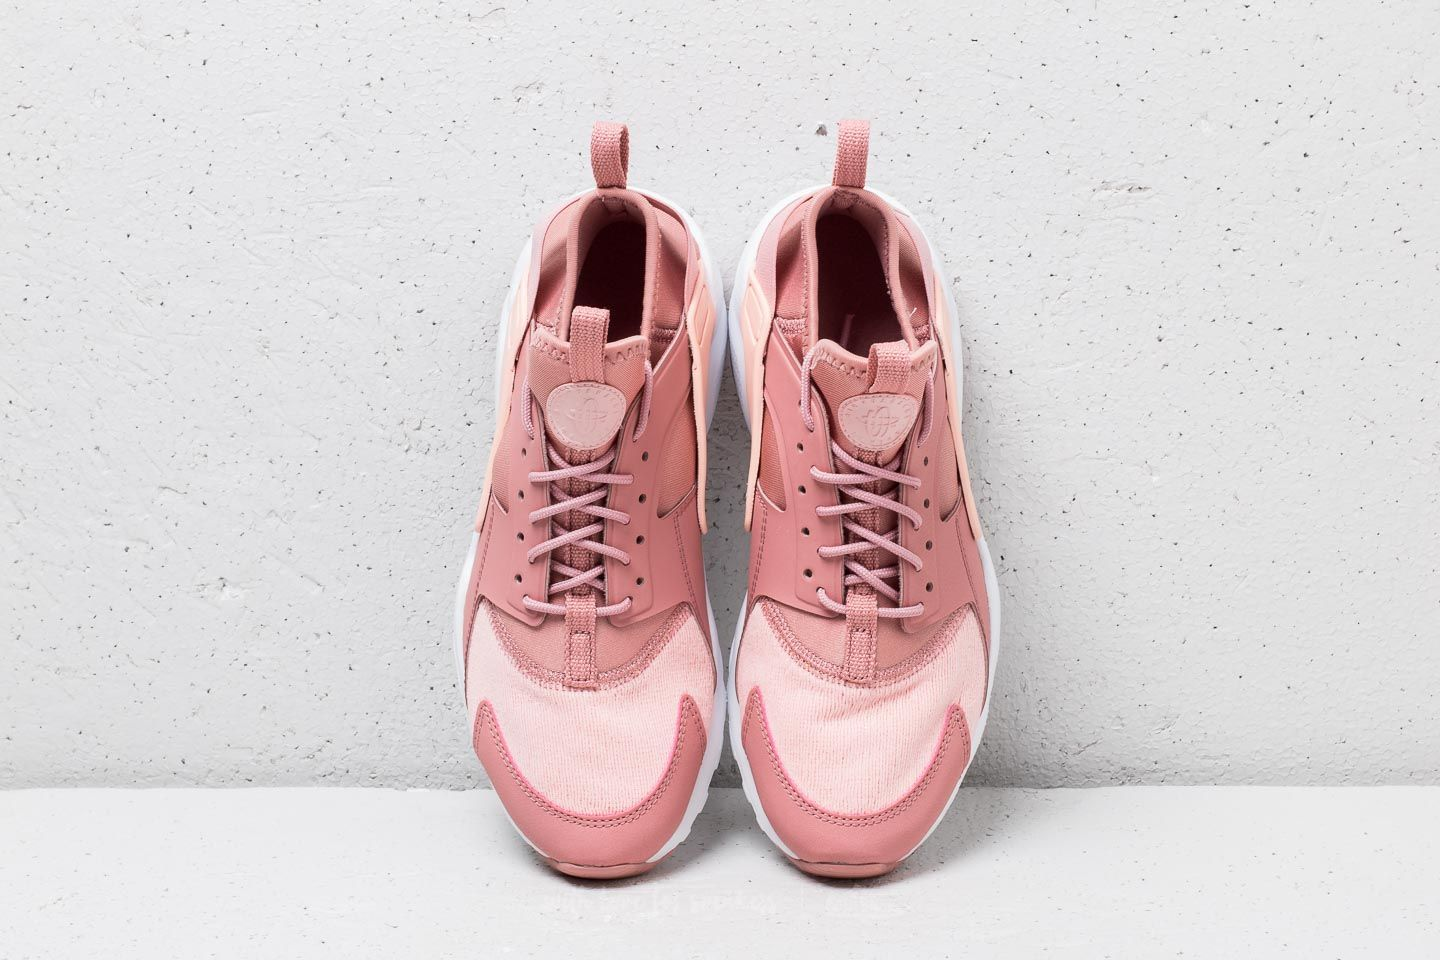 e71ebf4c2fd95 ... 50% off nike air huarache run ultra se gs rust pink storm pink white  5da50